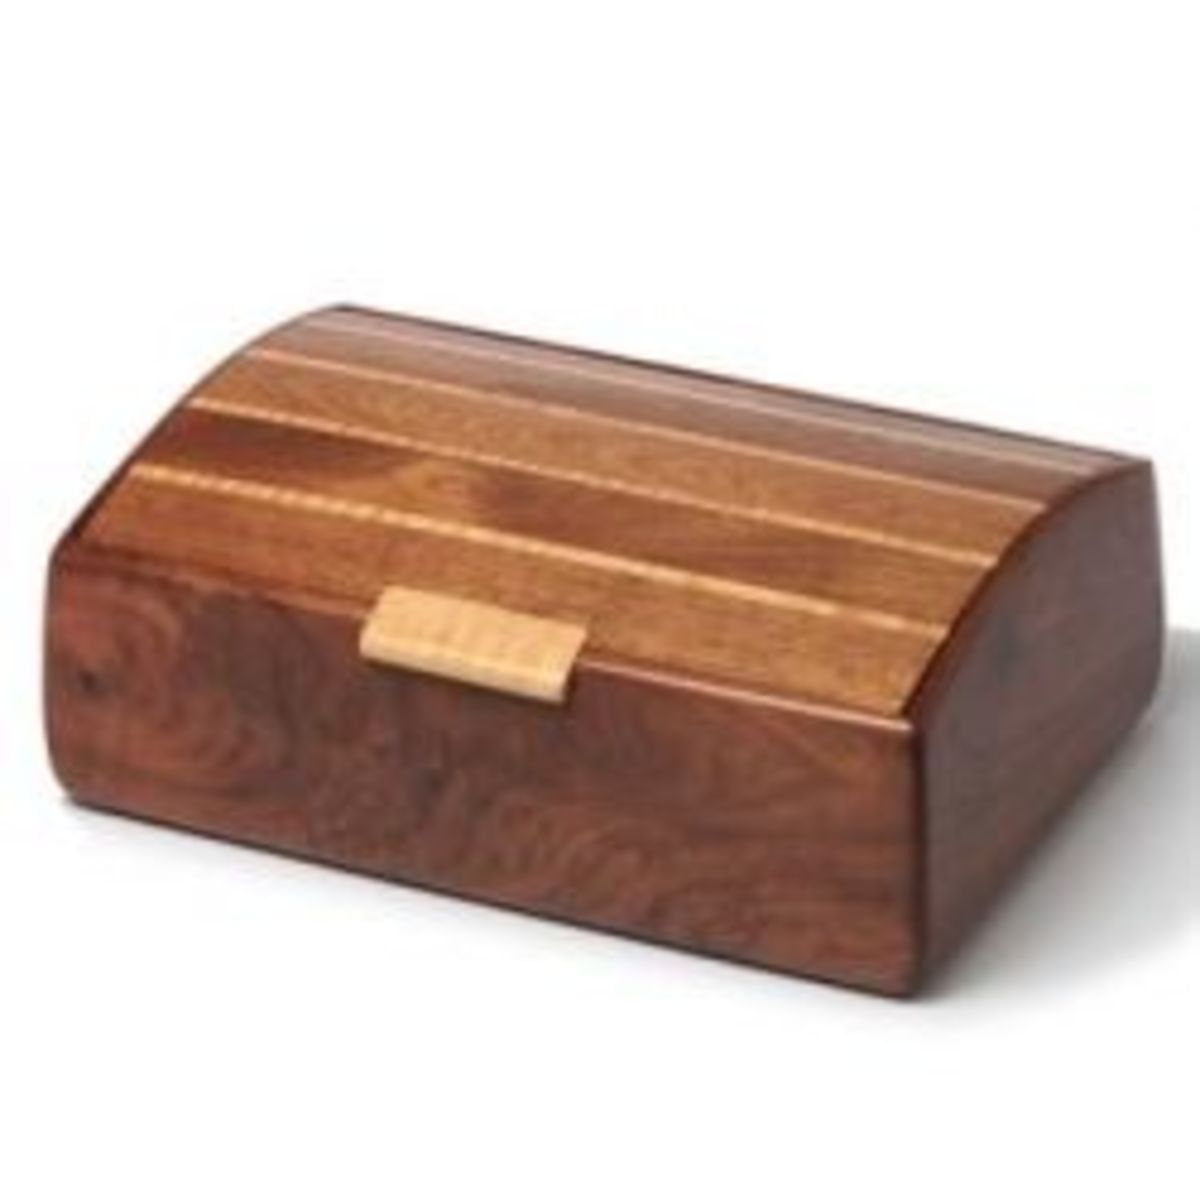 Sculpted Walnut Treasure Chest